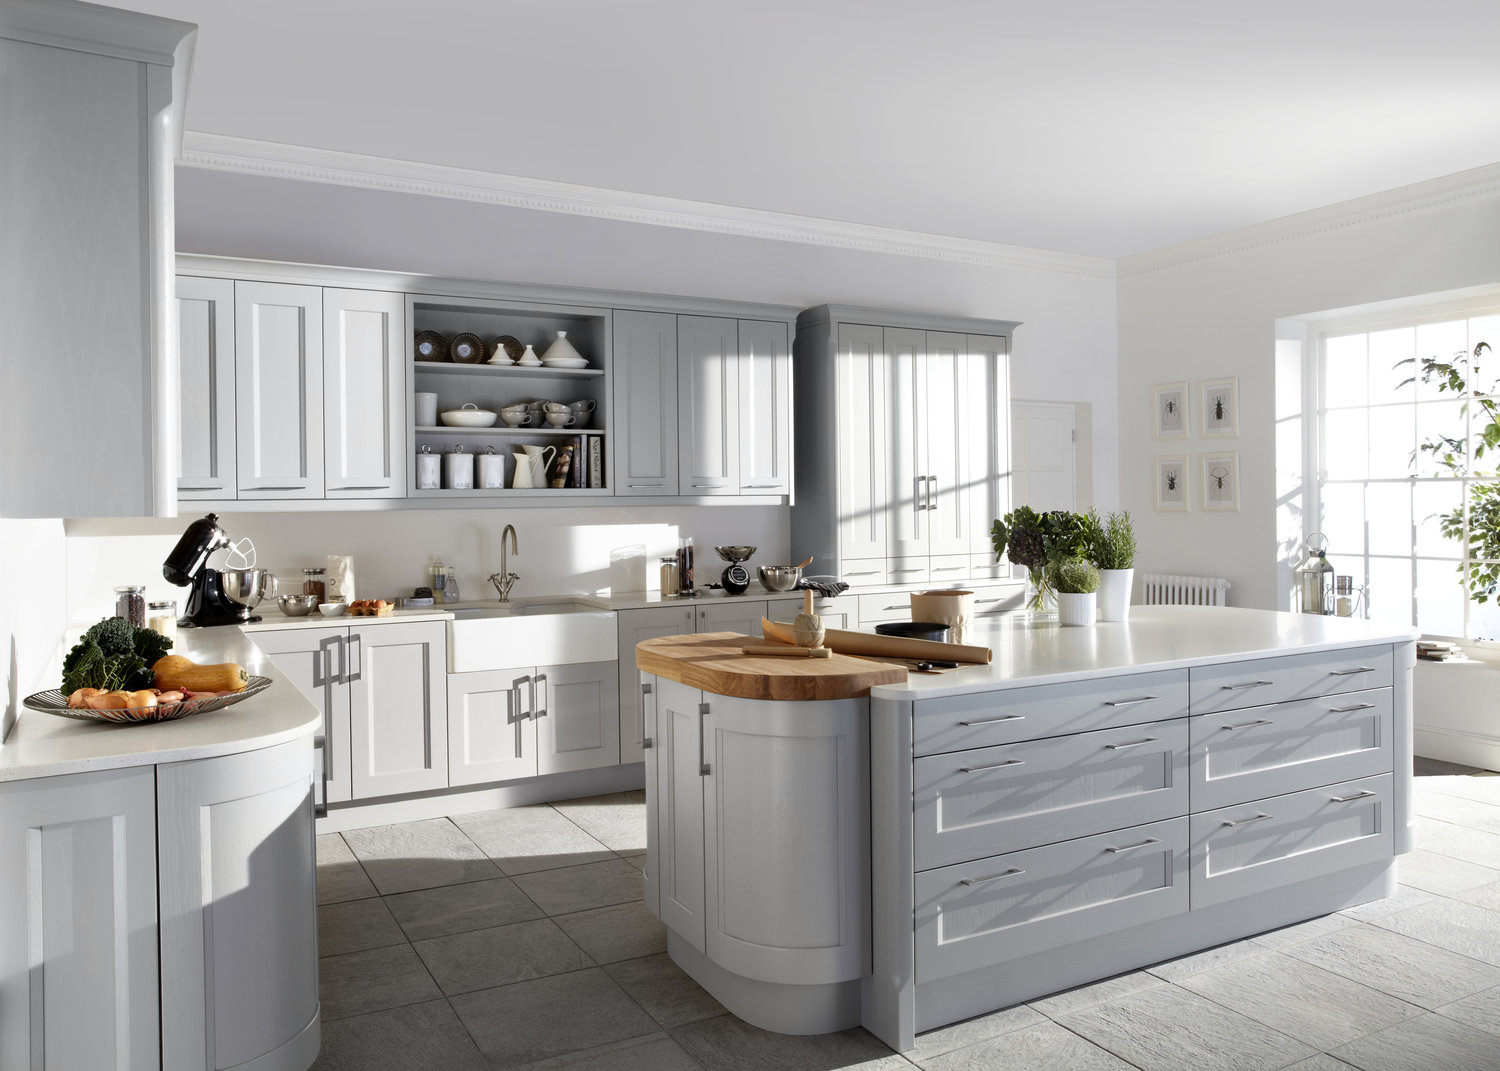 kew is just one of our many painted kitchens, handcrafted here in britain.